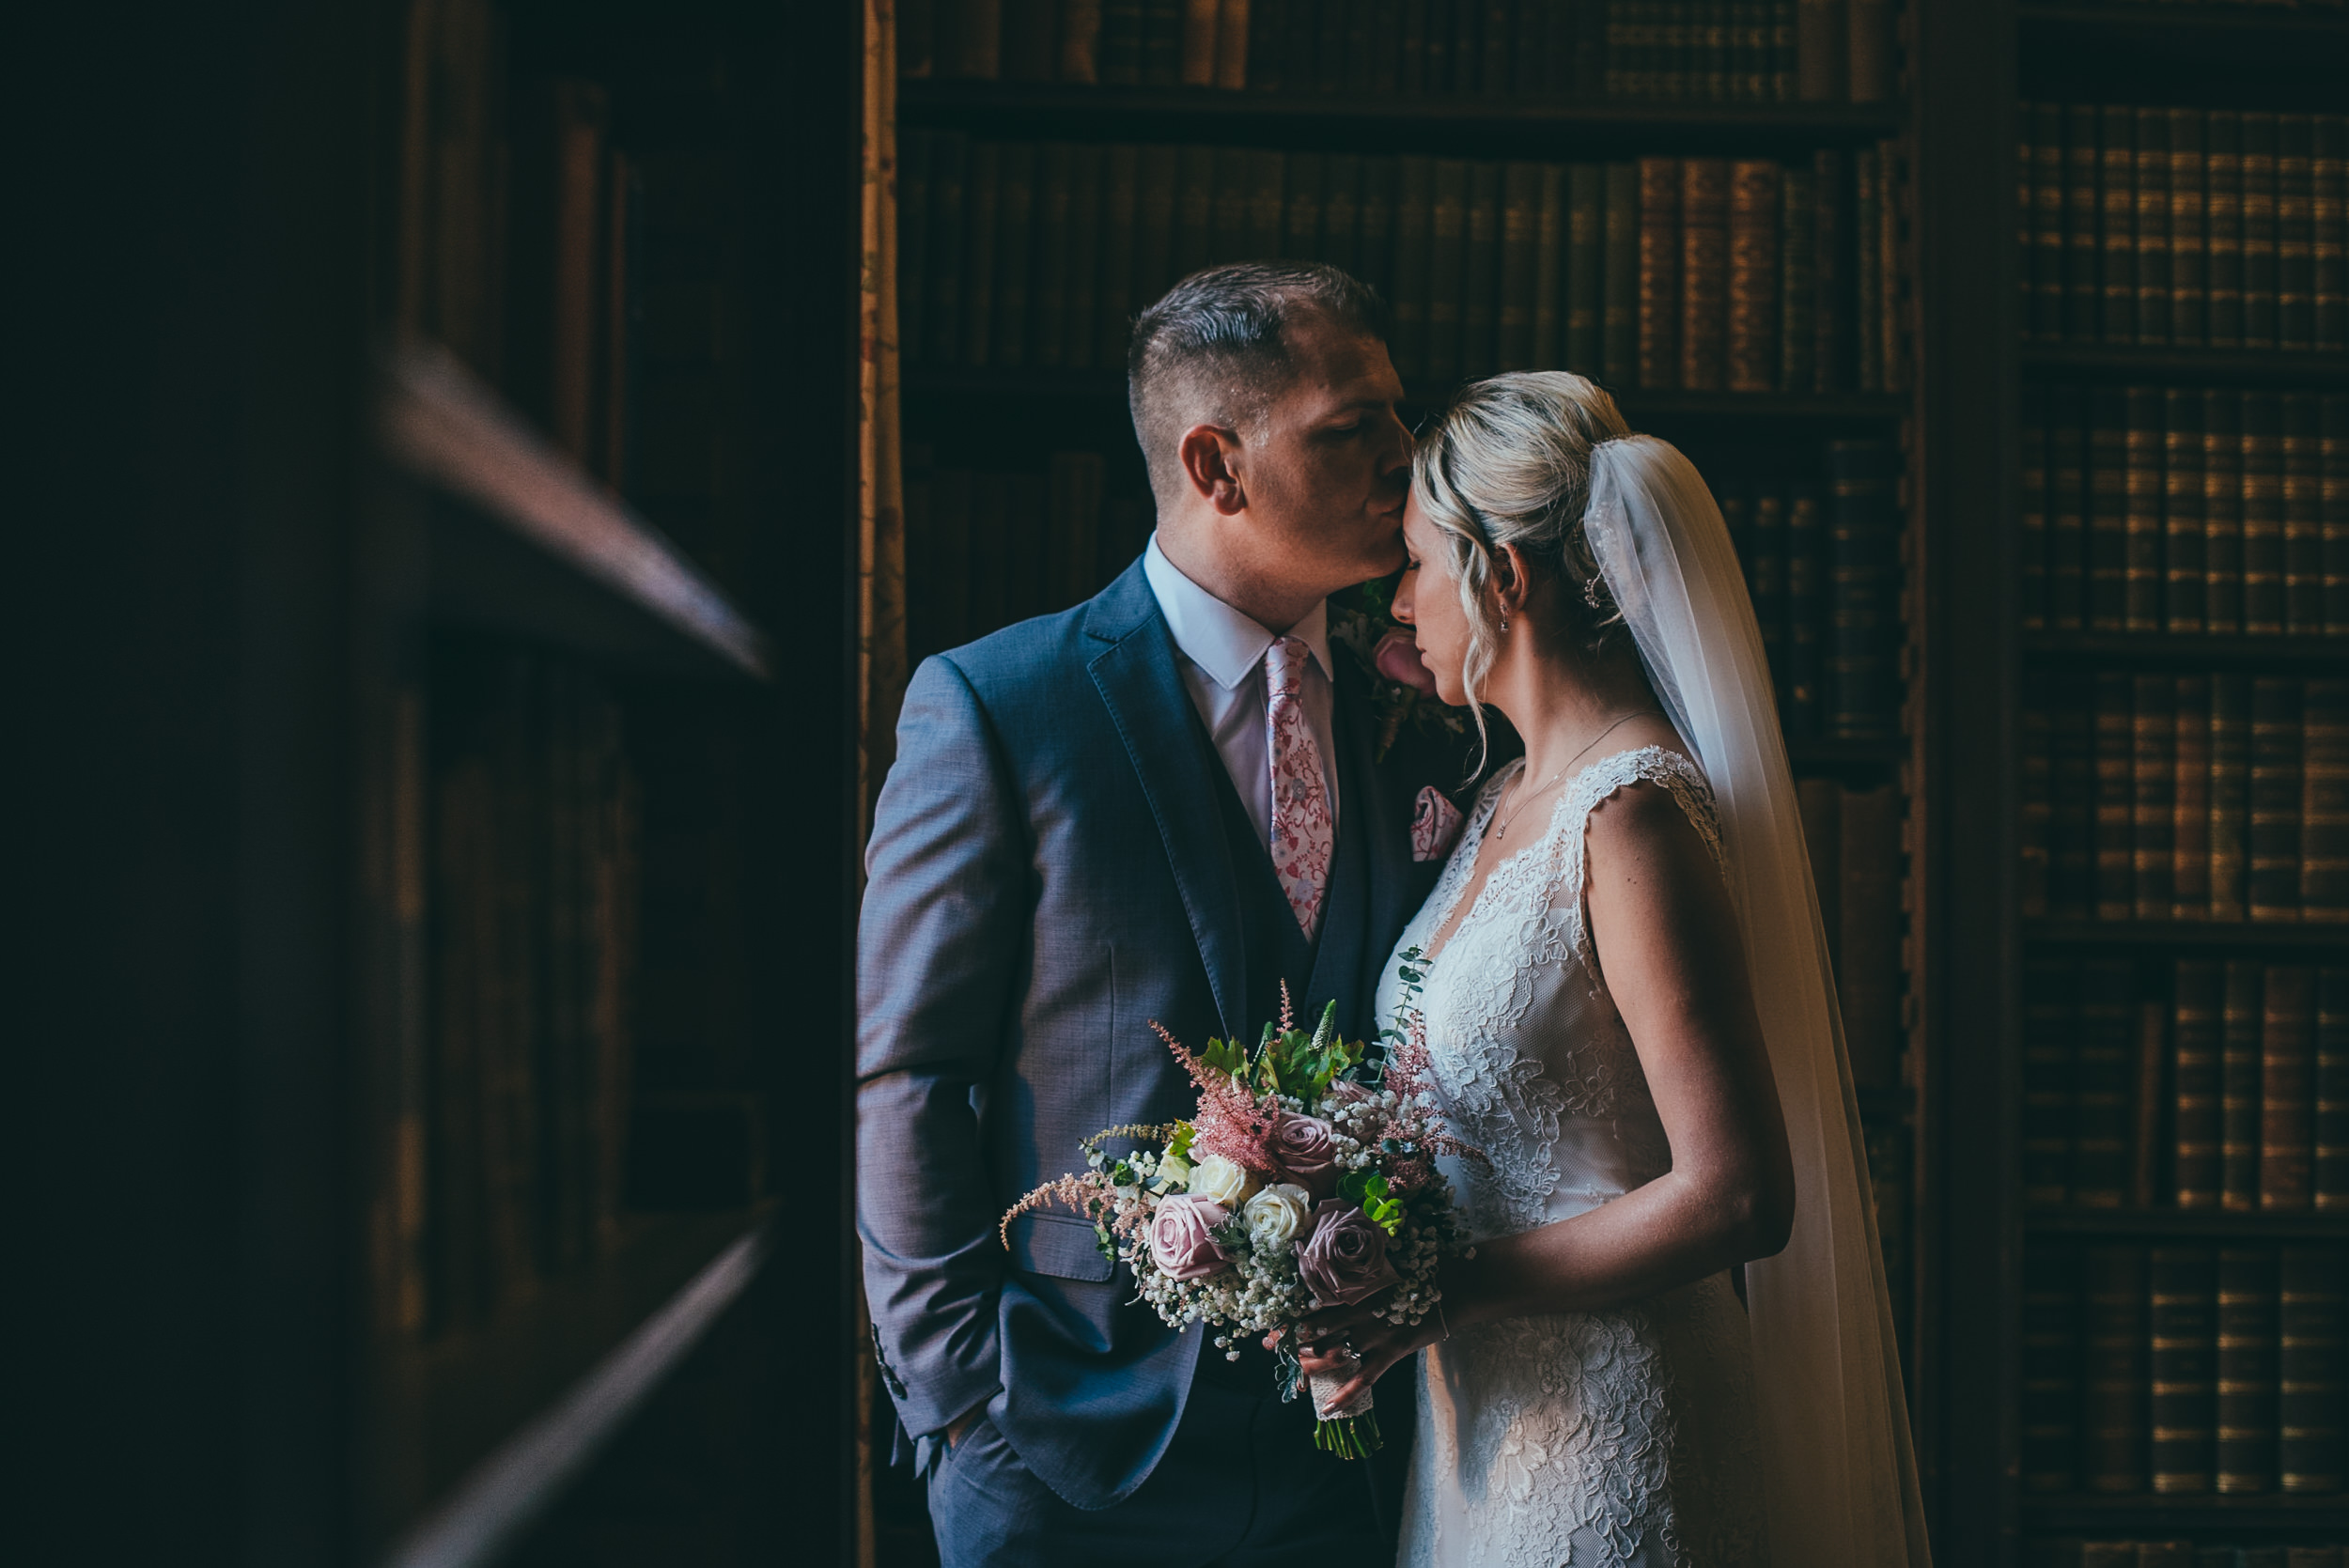 Norwood Park Wedding Photography | Matt Andrew Photography